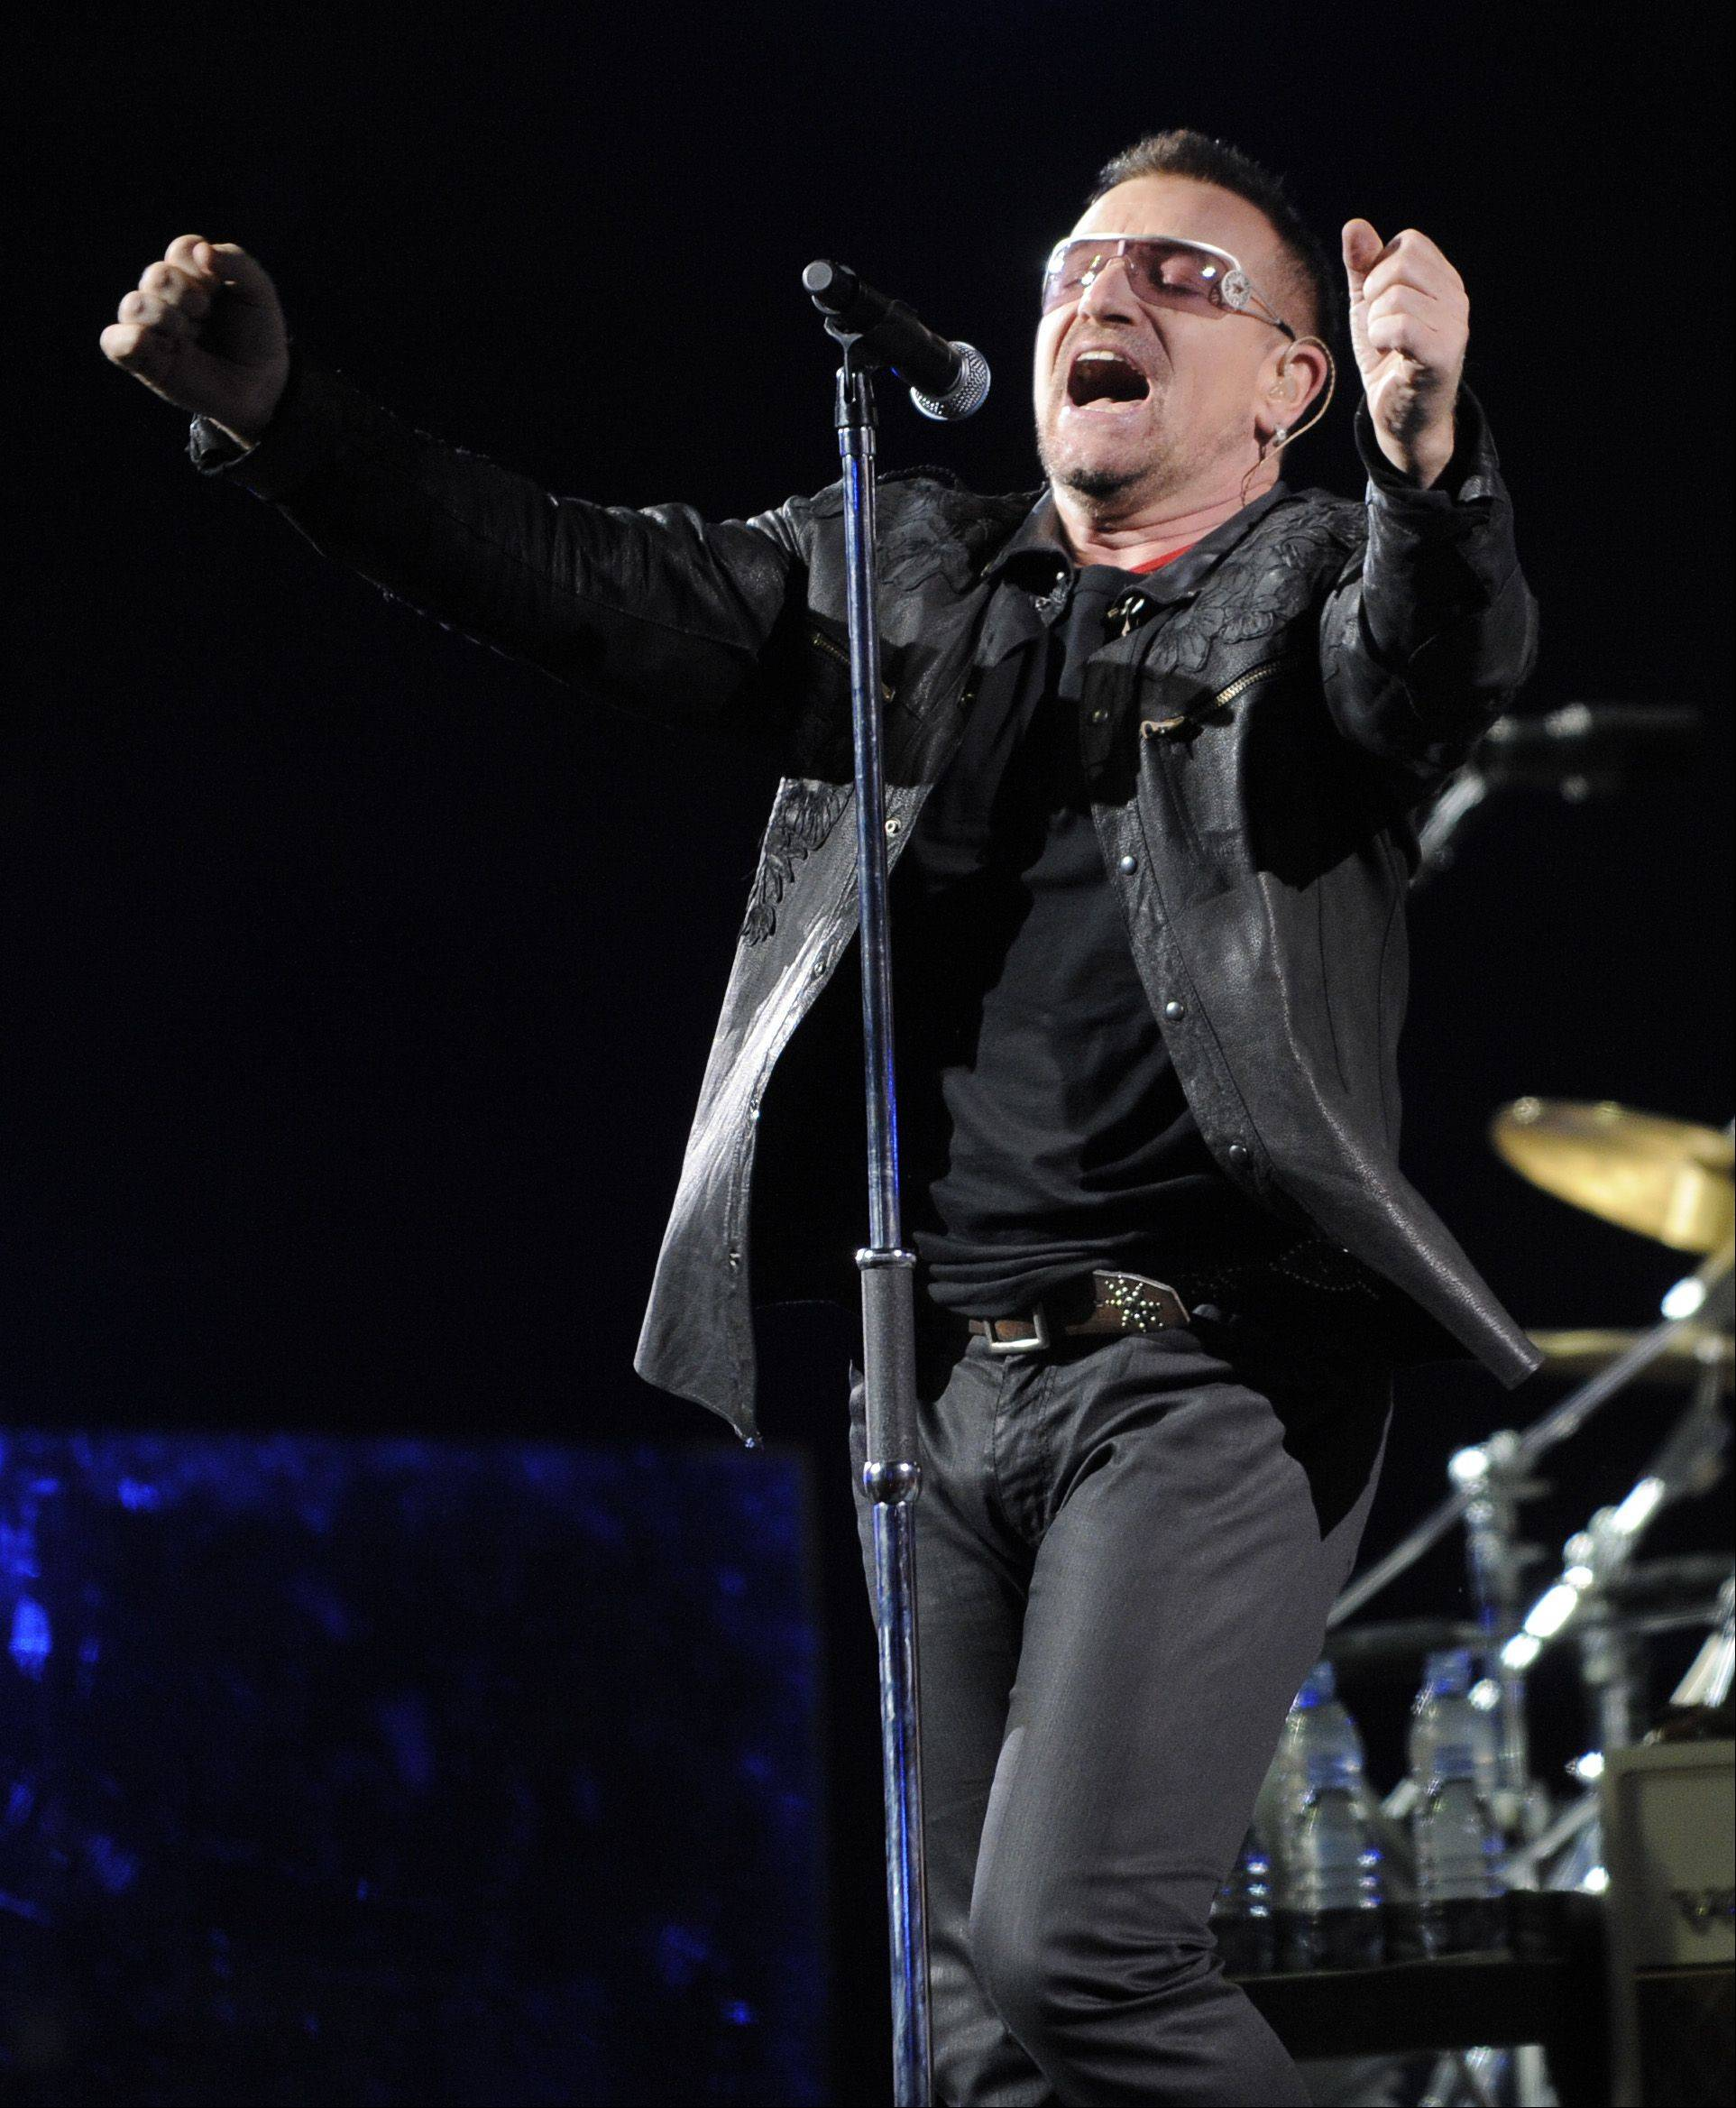 In this Oct. 25, 2009 file photo, Bono of the Irish rock band U2 performs during their 360 world tour stop at the Rose Bowl in Pasadena, Calif.